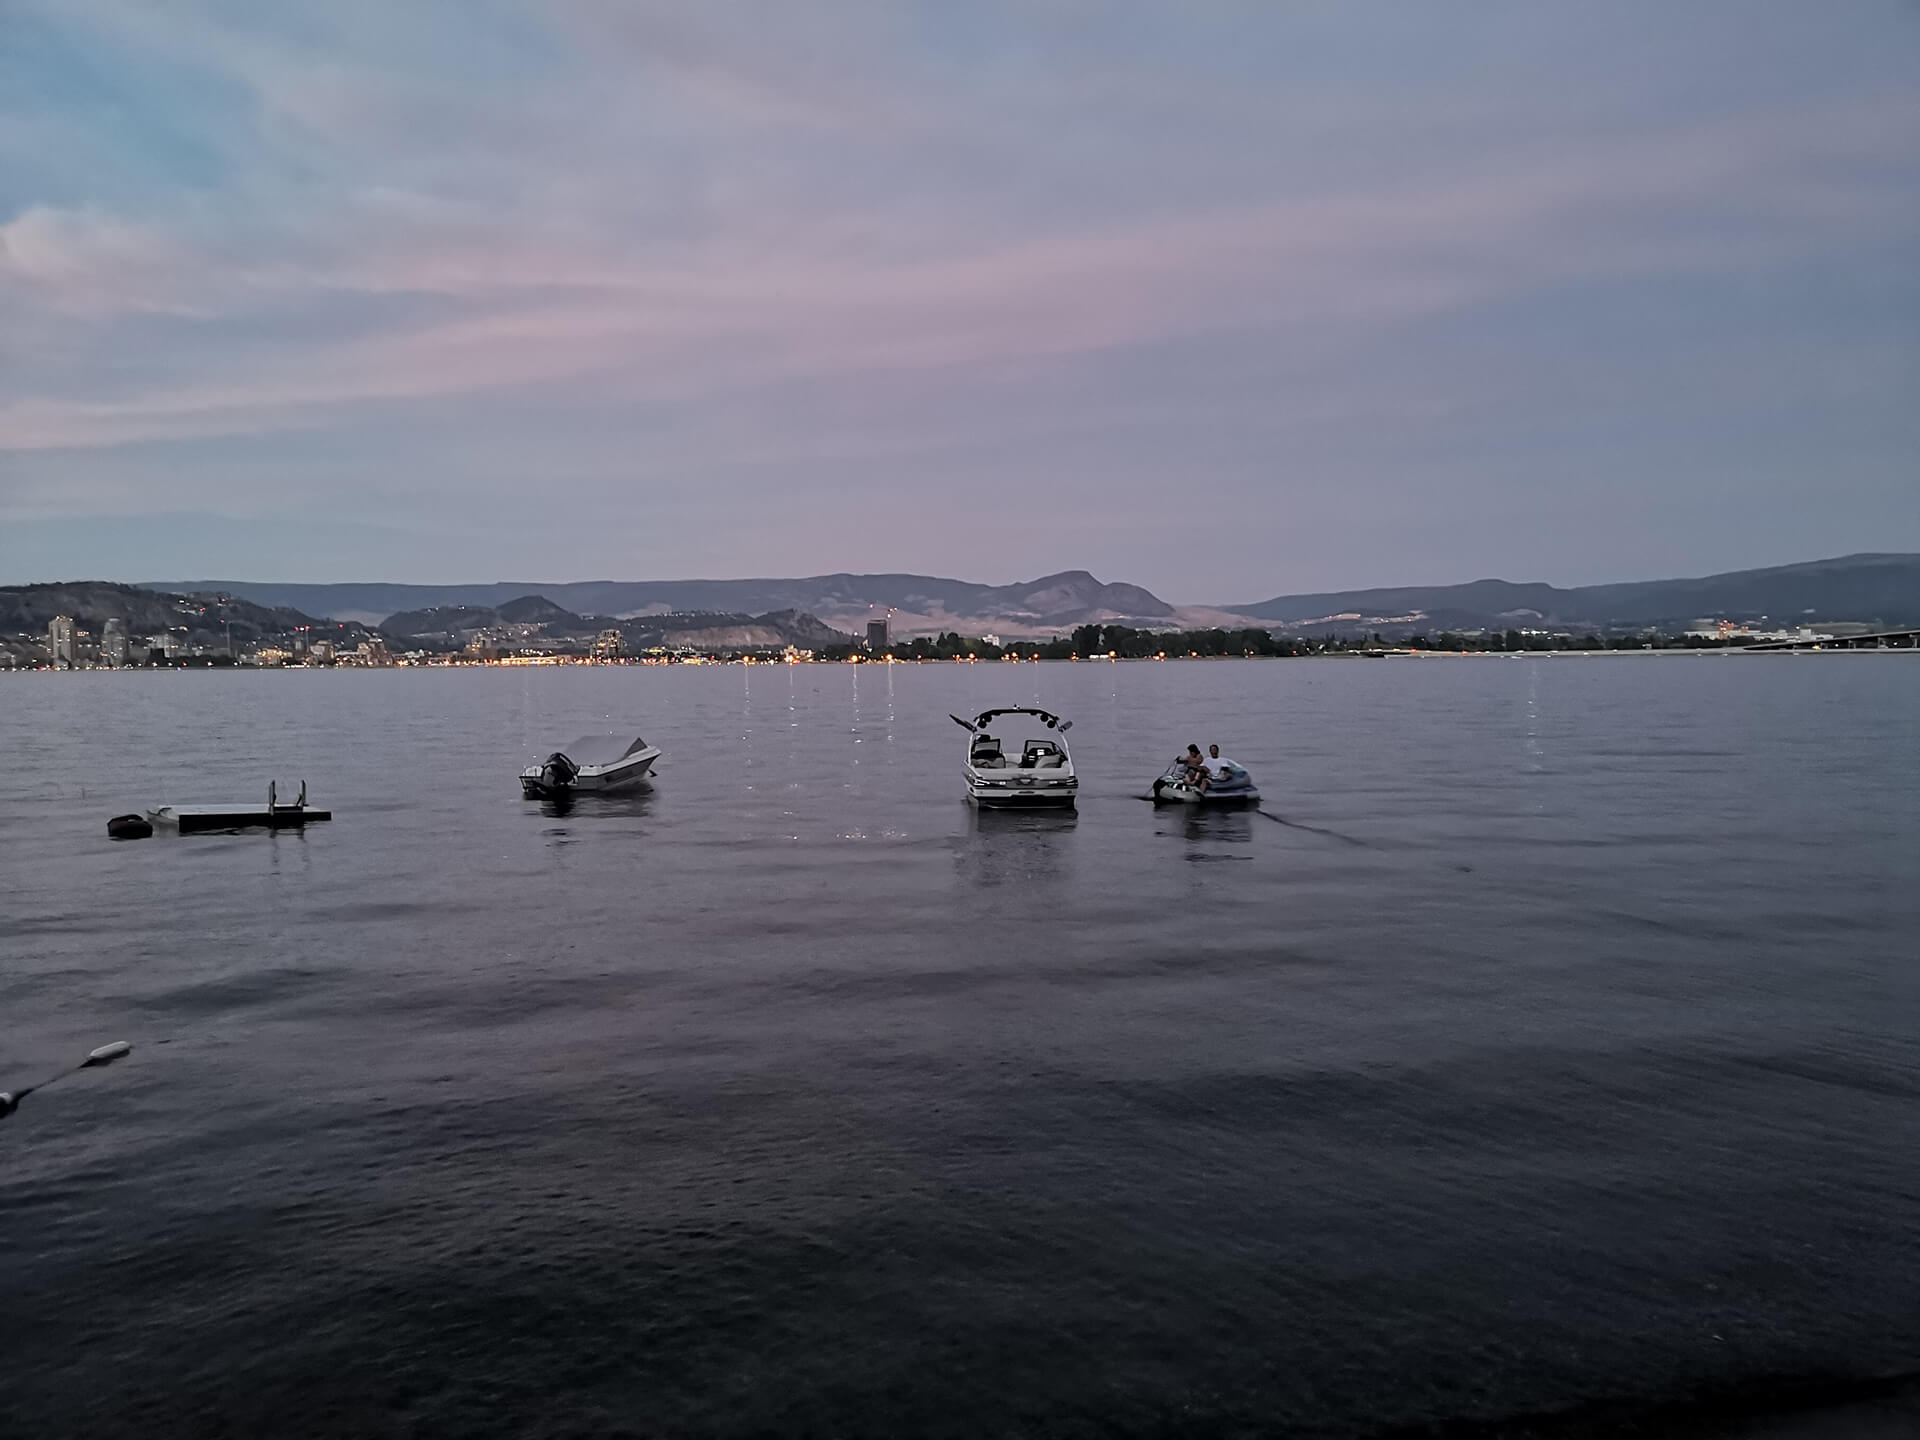 Buying Your First Home In Kelowna - Boats On The Lake